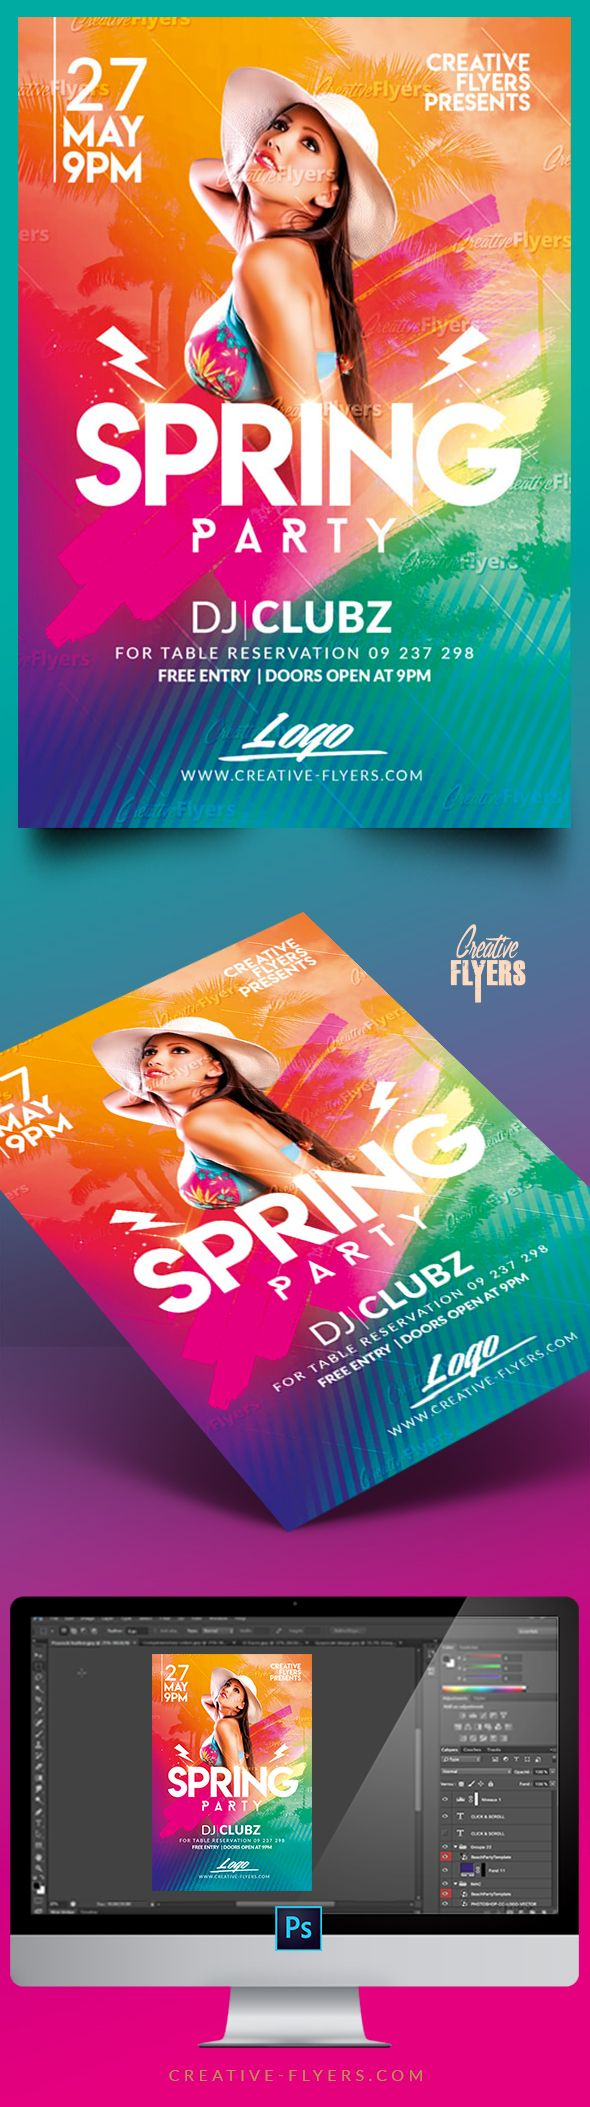 Creative Spring Break Flyer Psd Templates Perfect To Promote Your